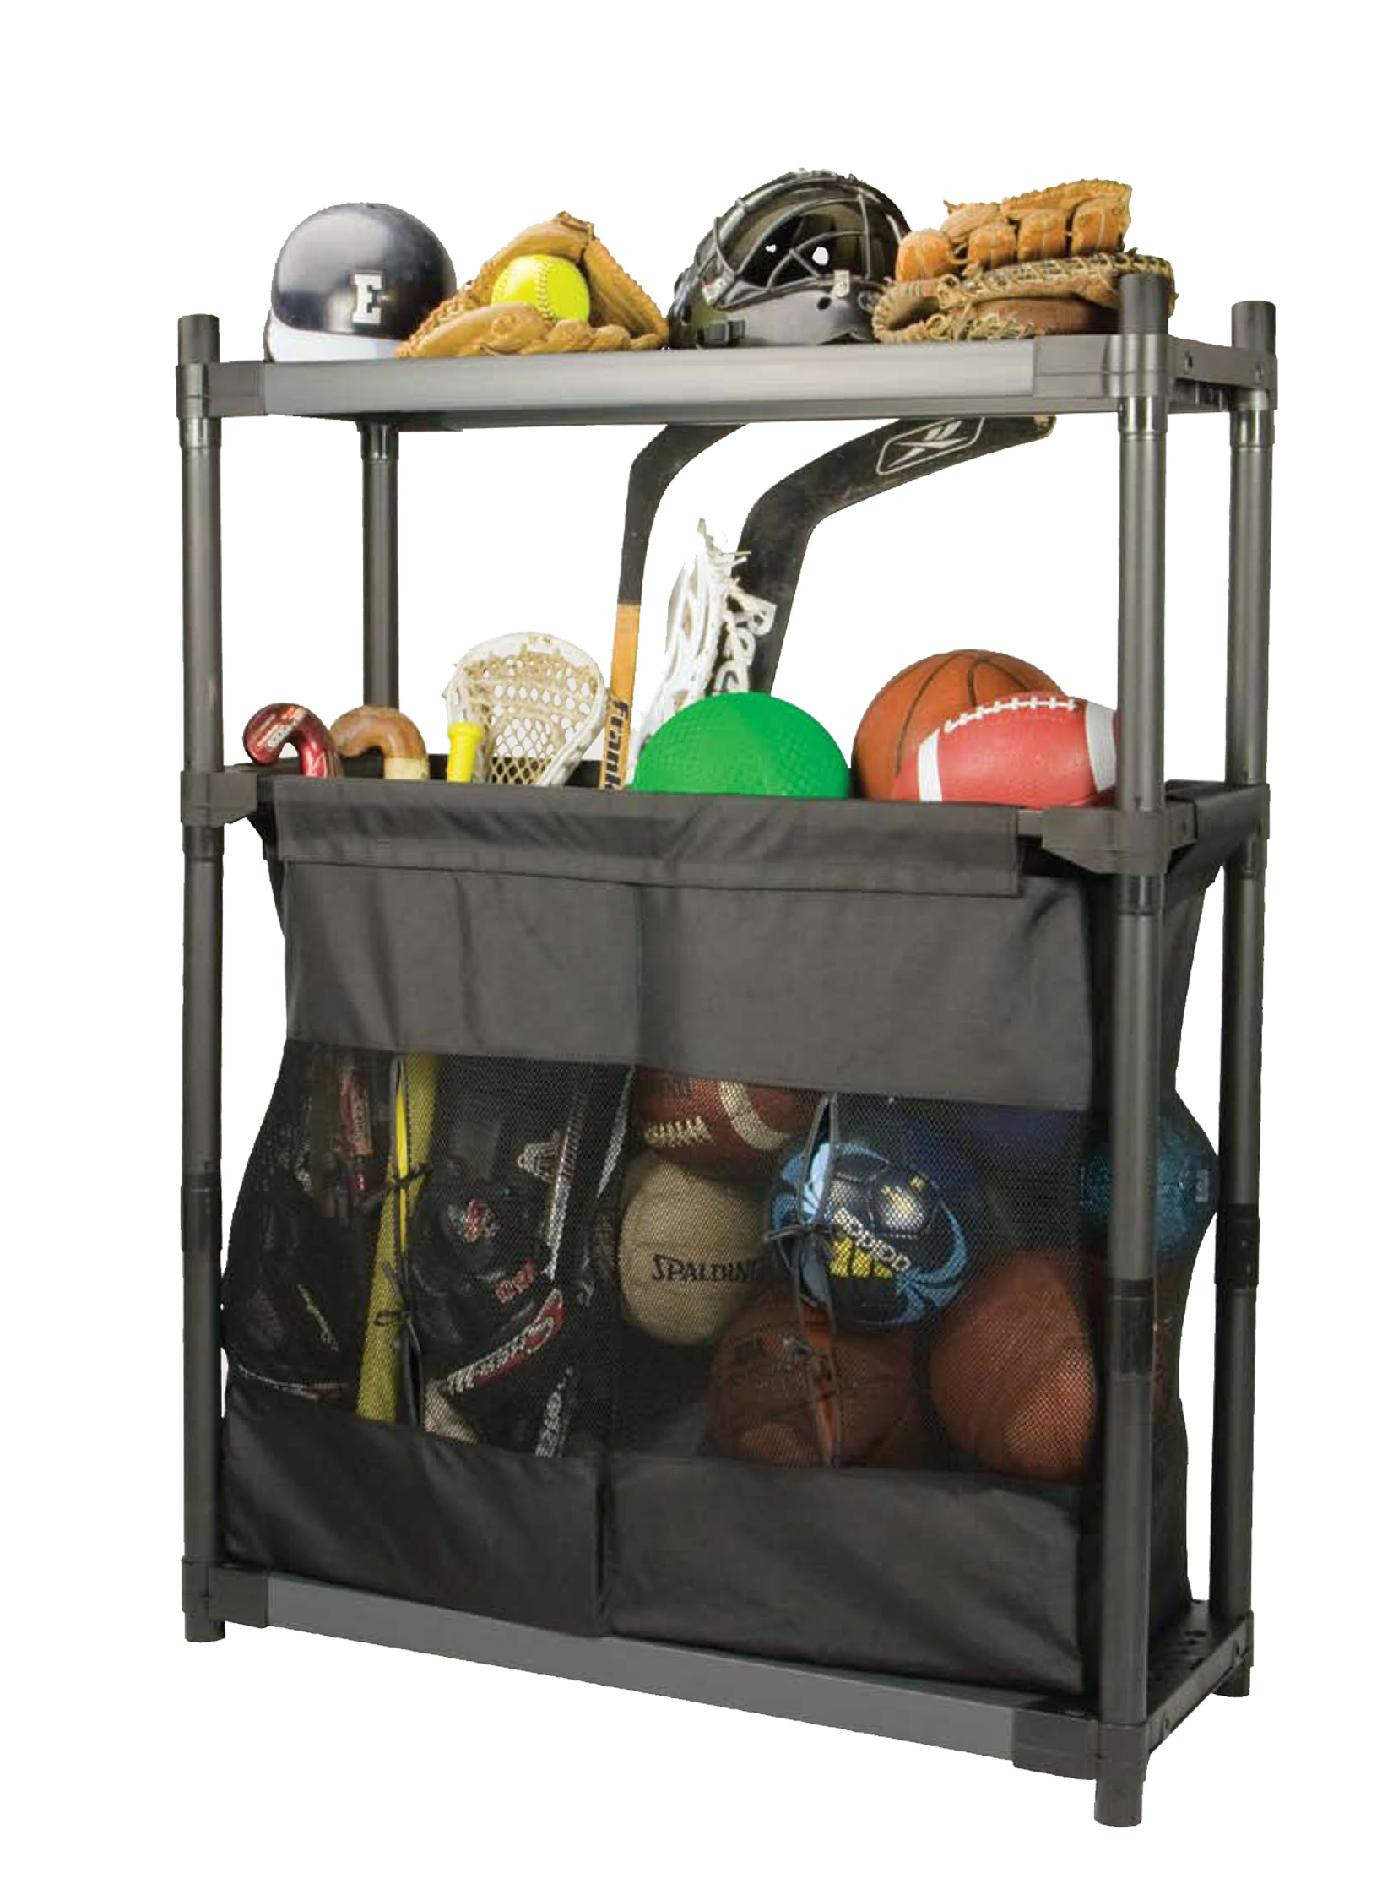 Sports Equipment Organizer For Garage  Grossfillex MaximUp 36 EZ Sport Storage props not included